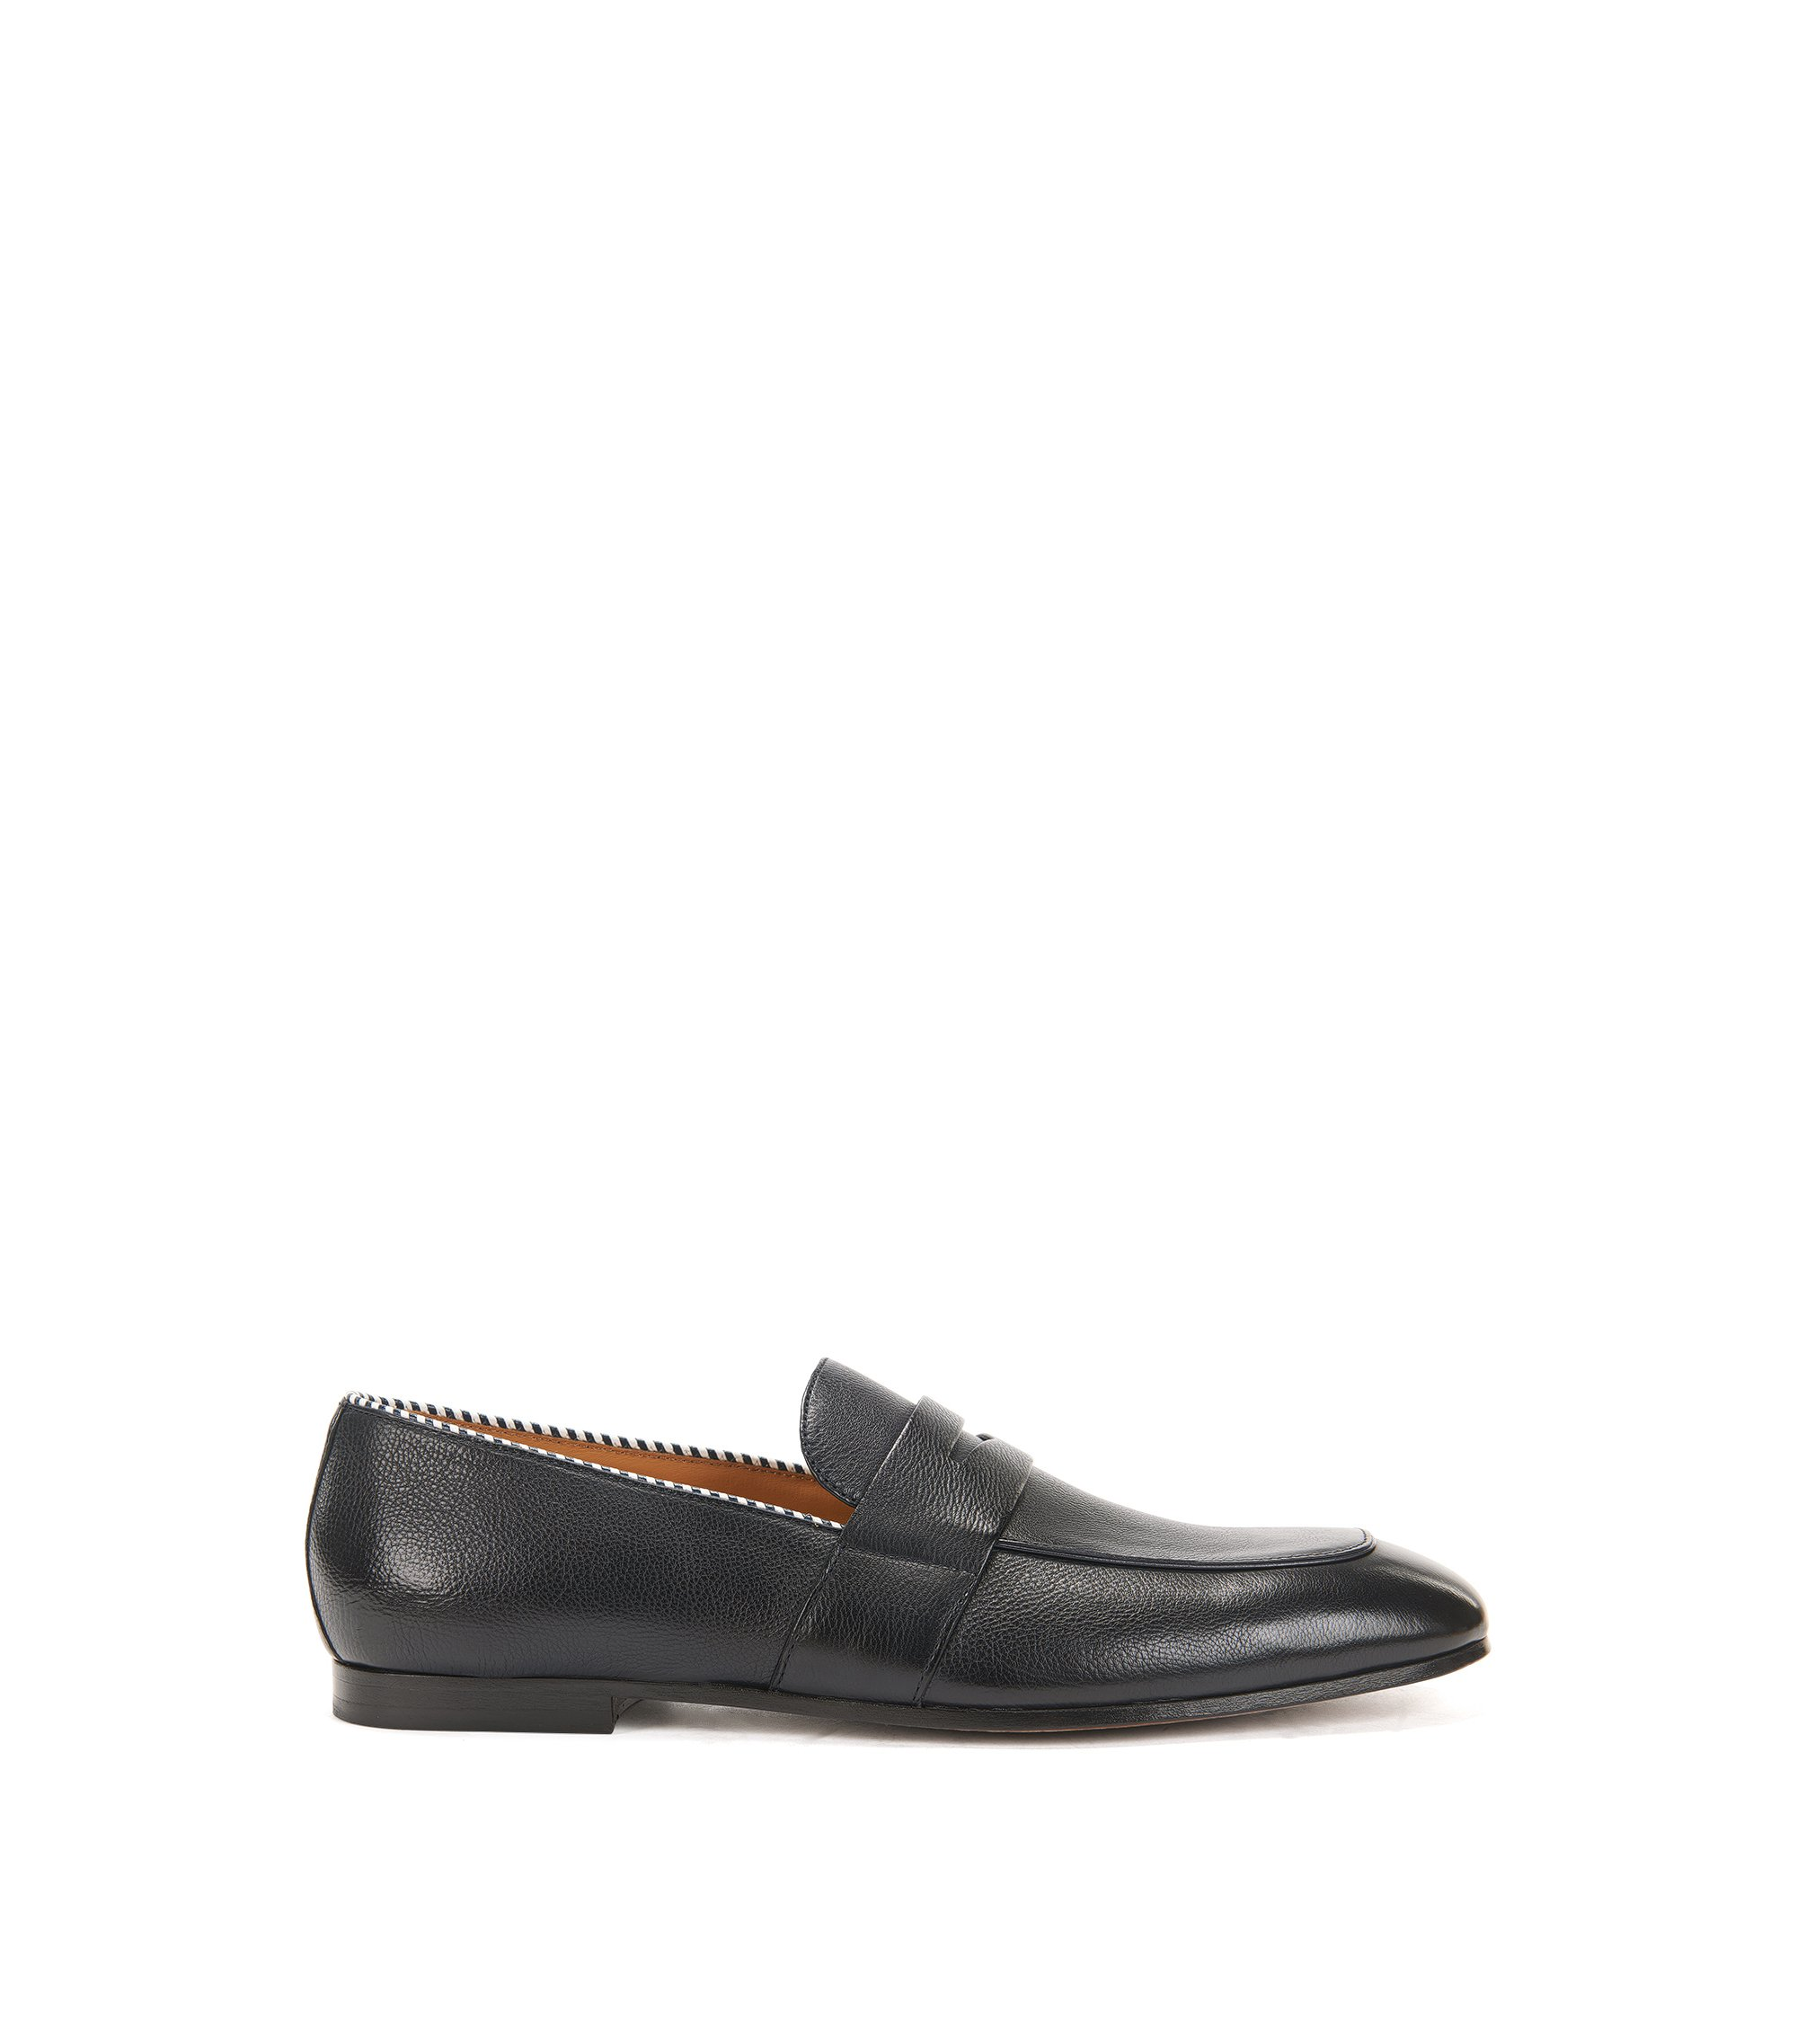 Leather Penny Loafer | Safari Loaf, Dark Blue